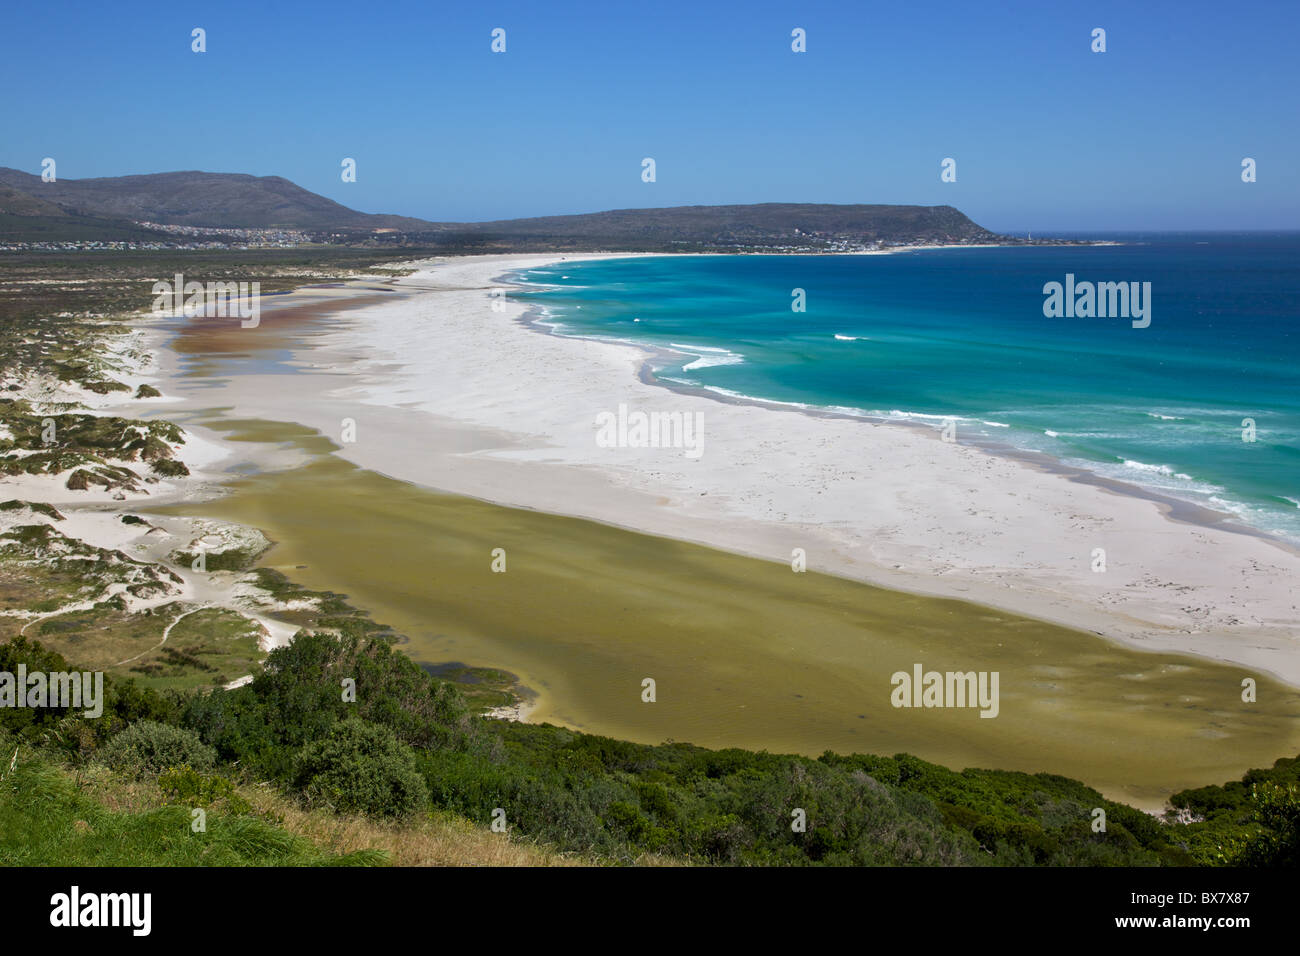 The expanse of Long Beach, with Kommetjie in the background, Cape Peninsula, South Africa. Stock Photo